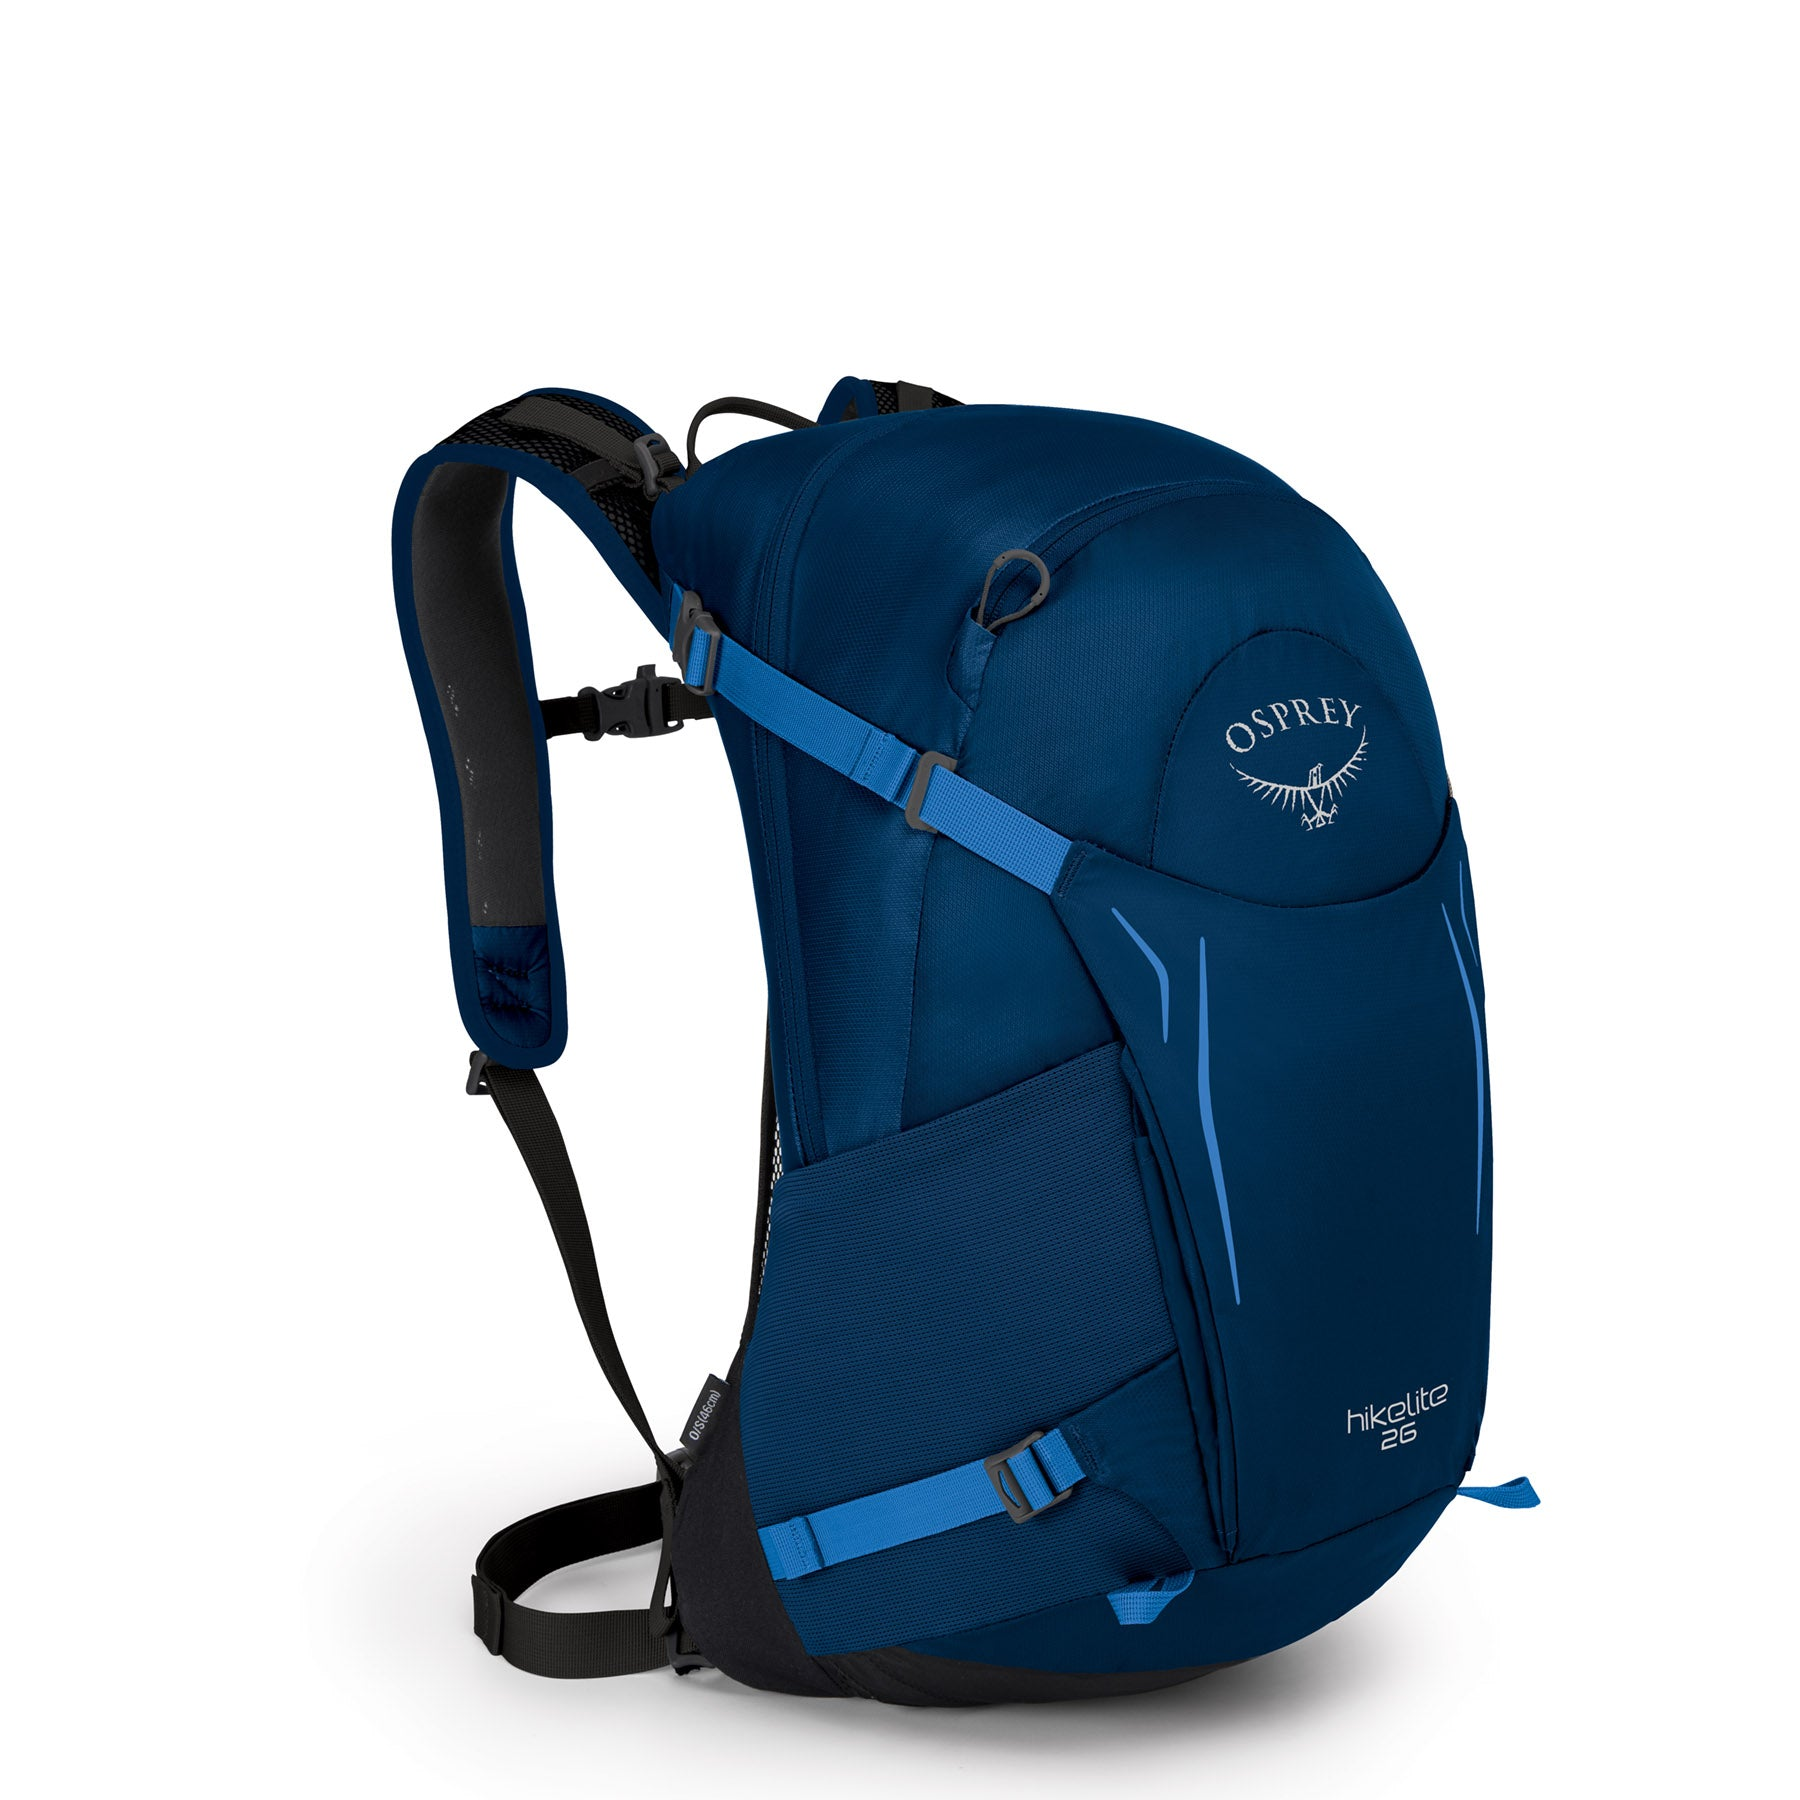 the front view of a blue daypack